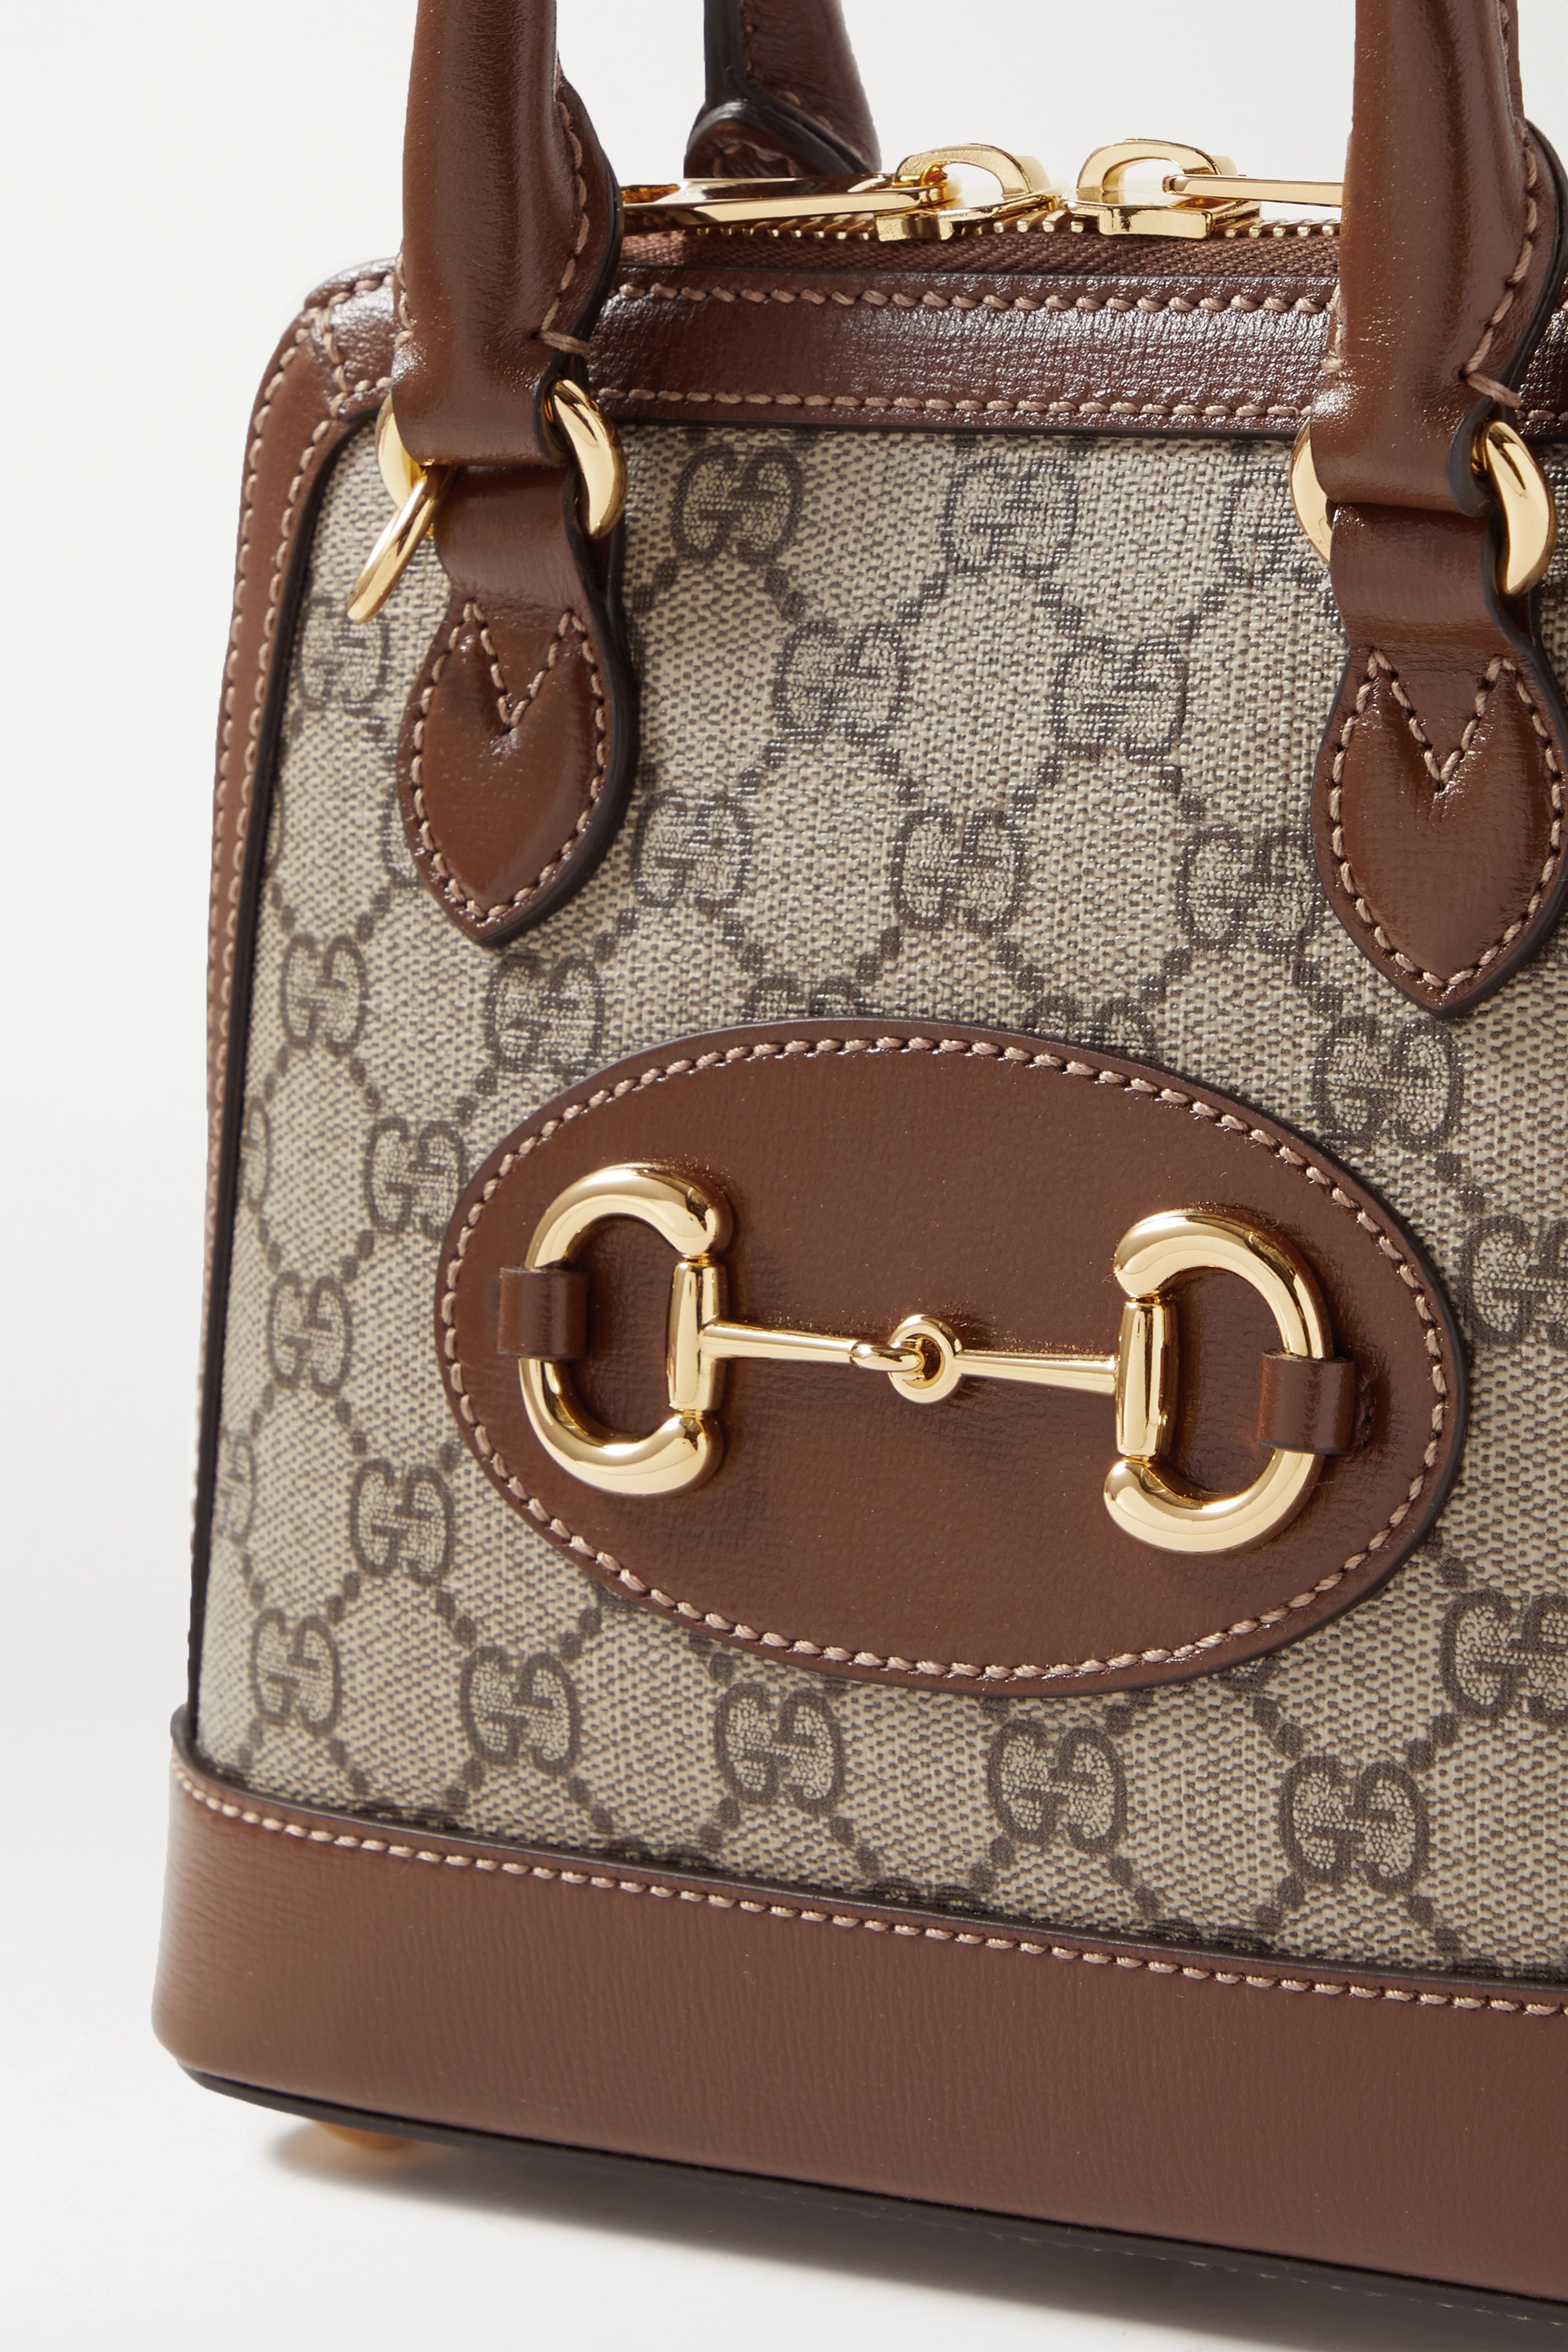 GUCCI 1955 Horsebit mini leather-trimmed printed coated-canvas tote